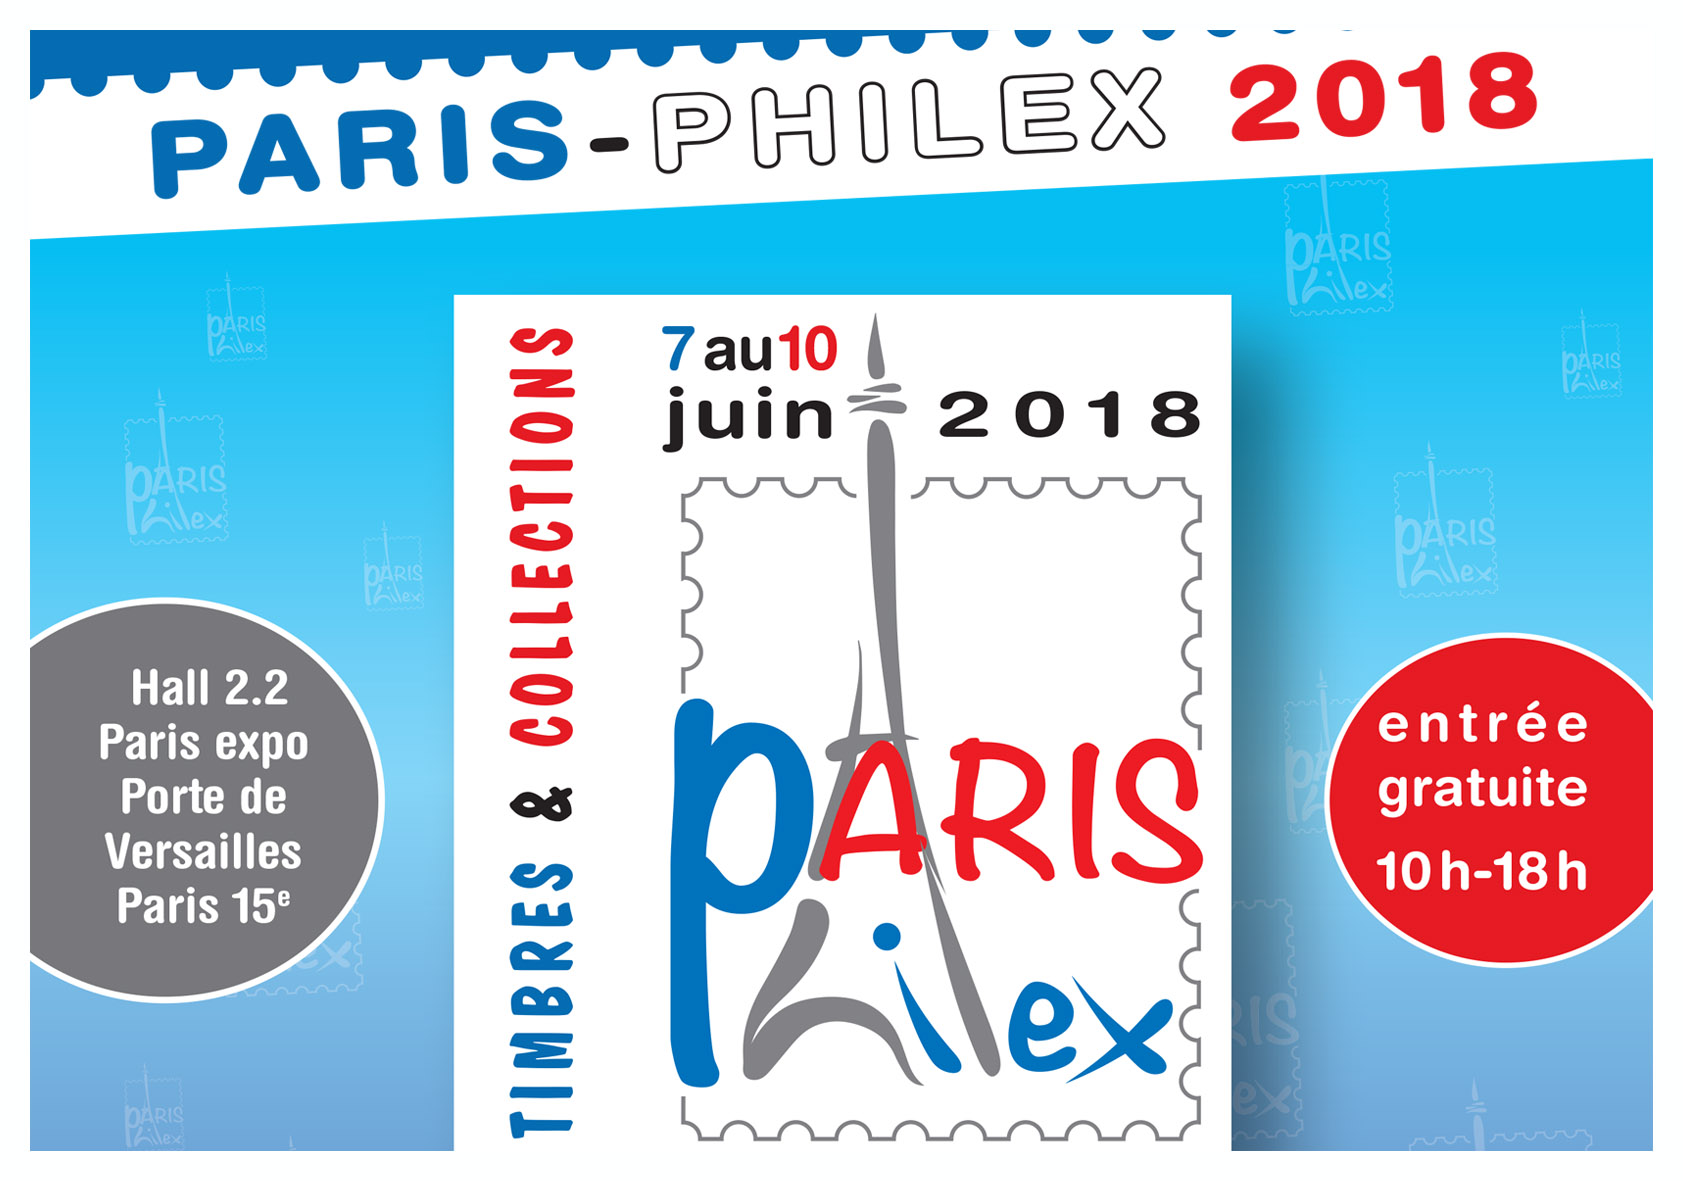 Paris -Philex 2018